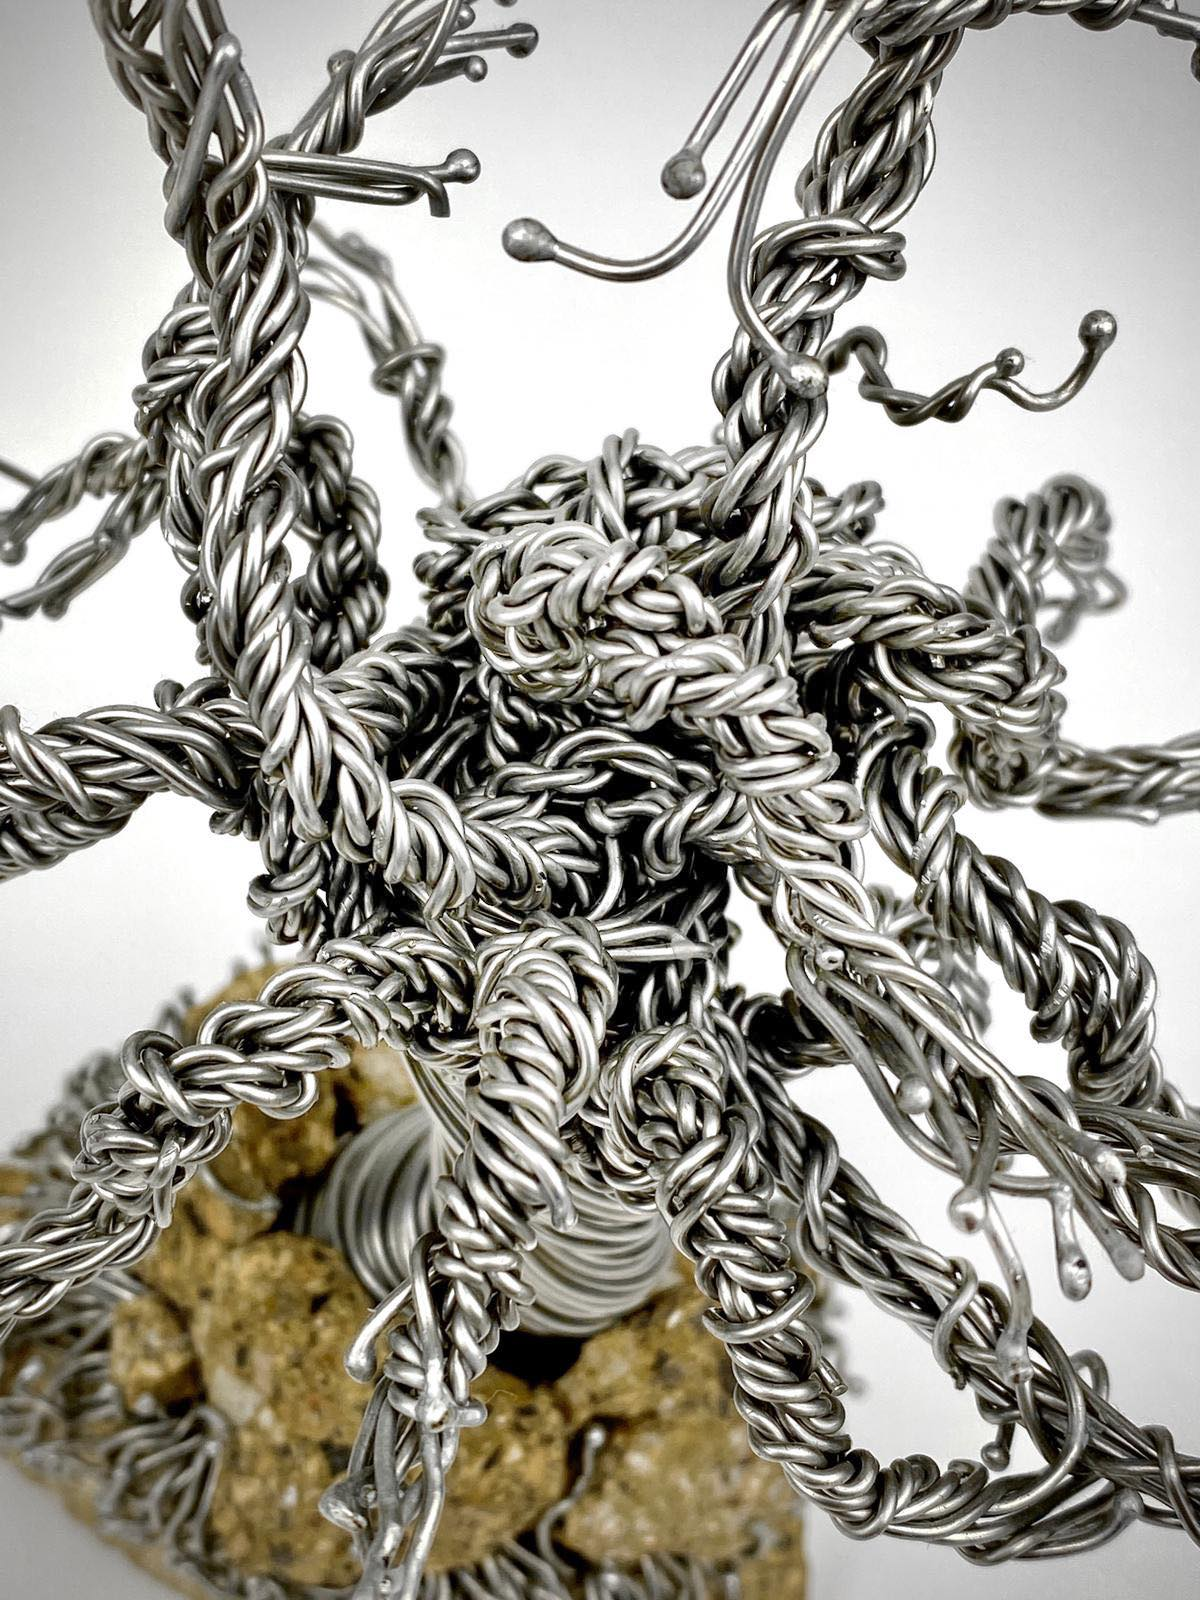 staying-strong-wire-sculpture-plan-view-by-weaam-hassan